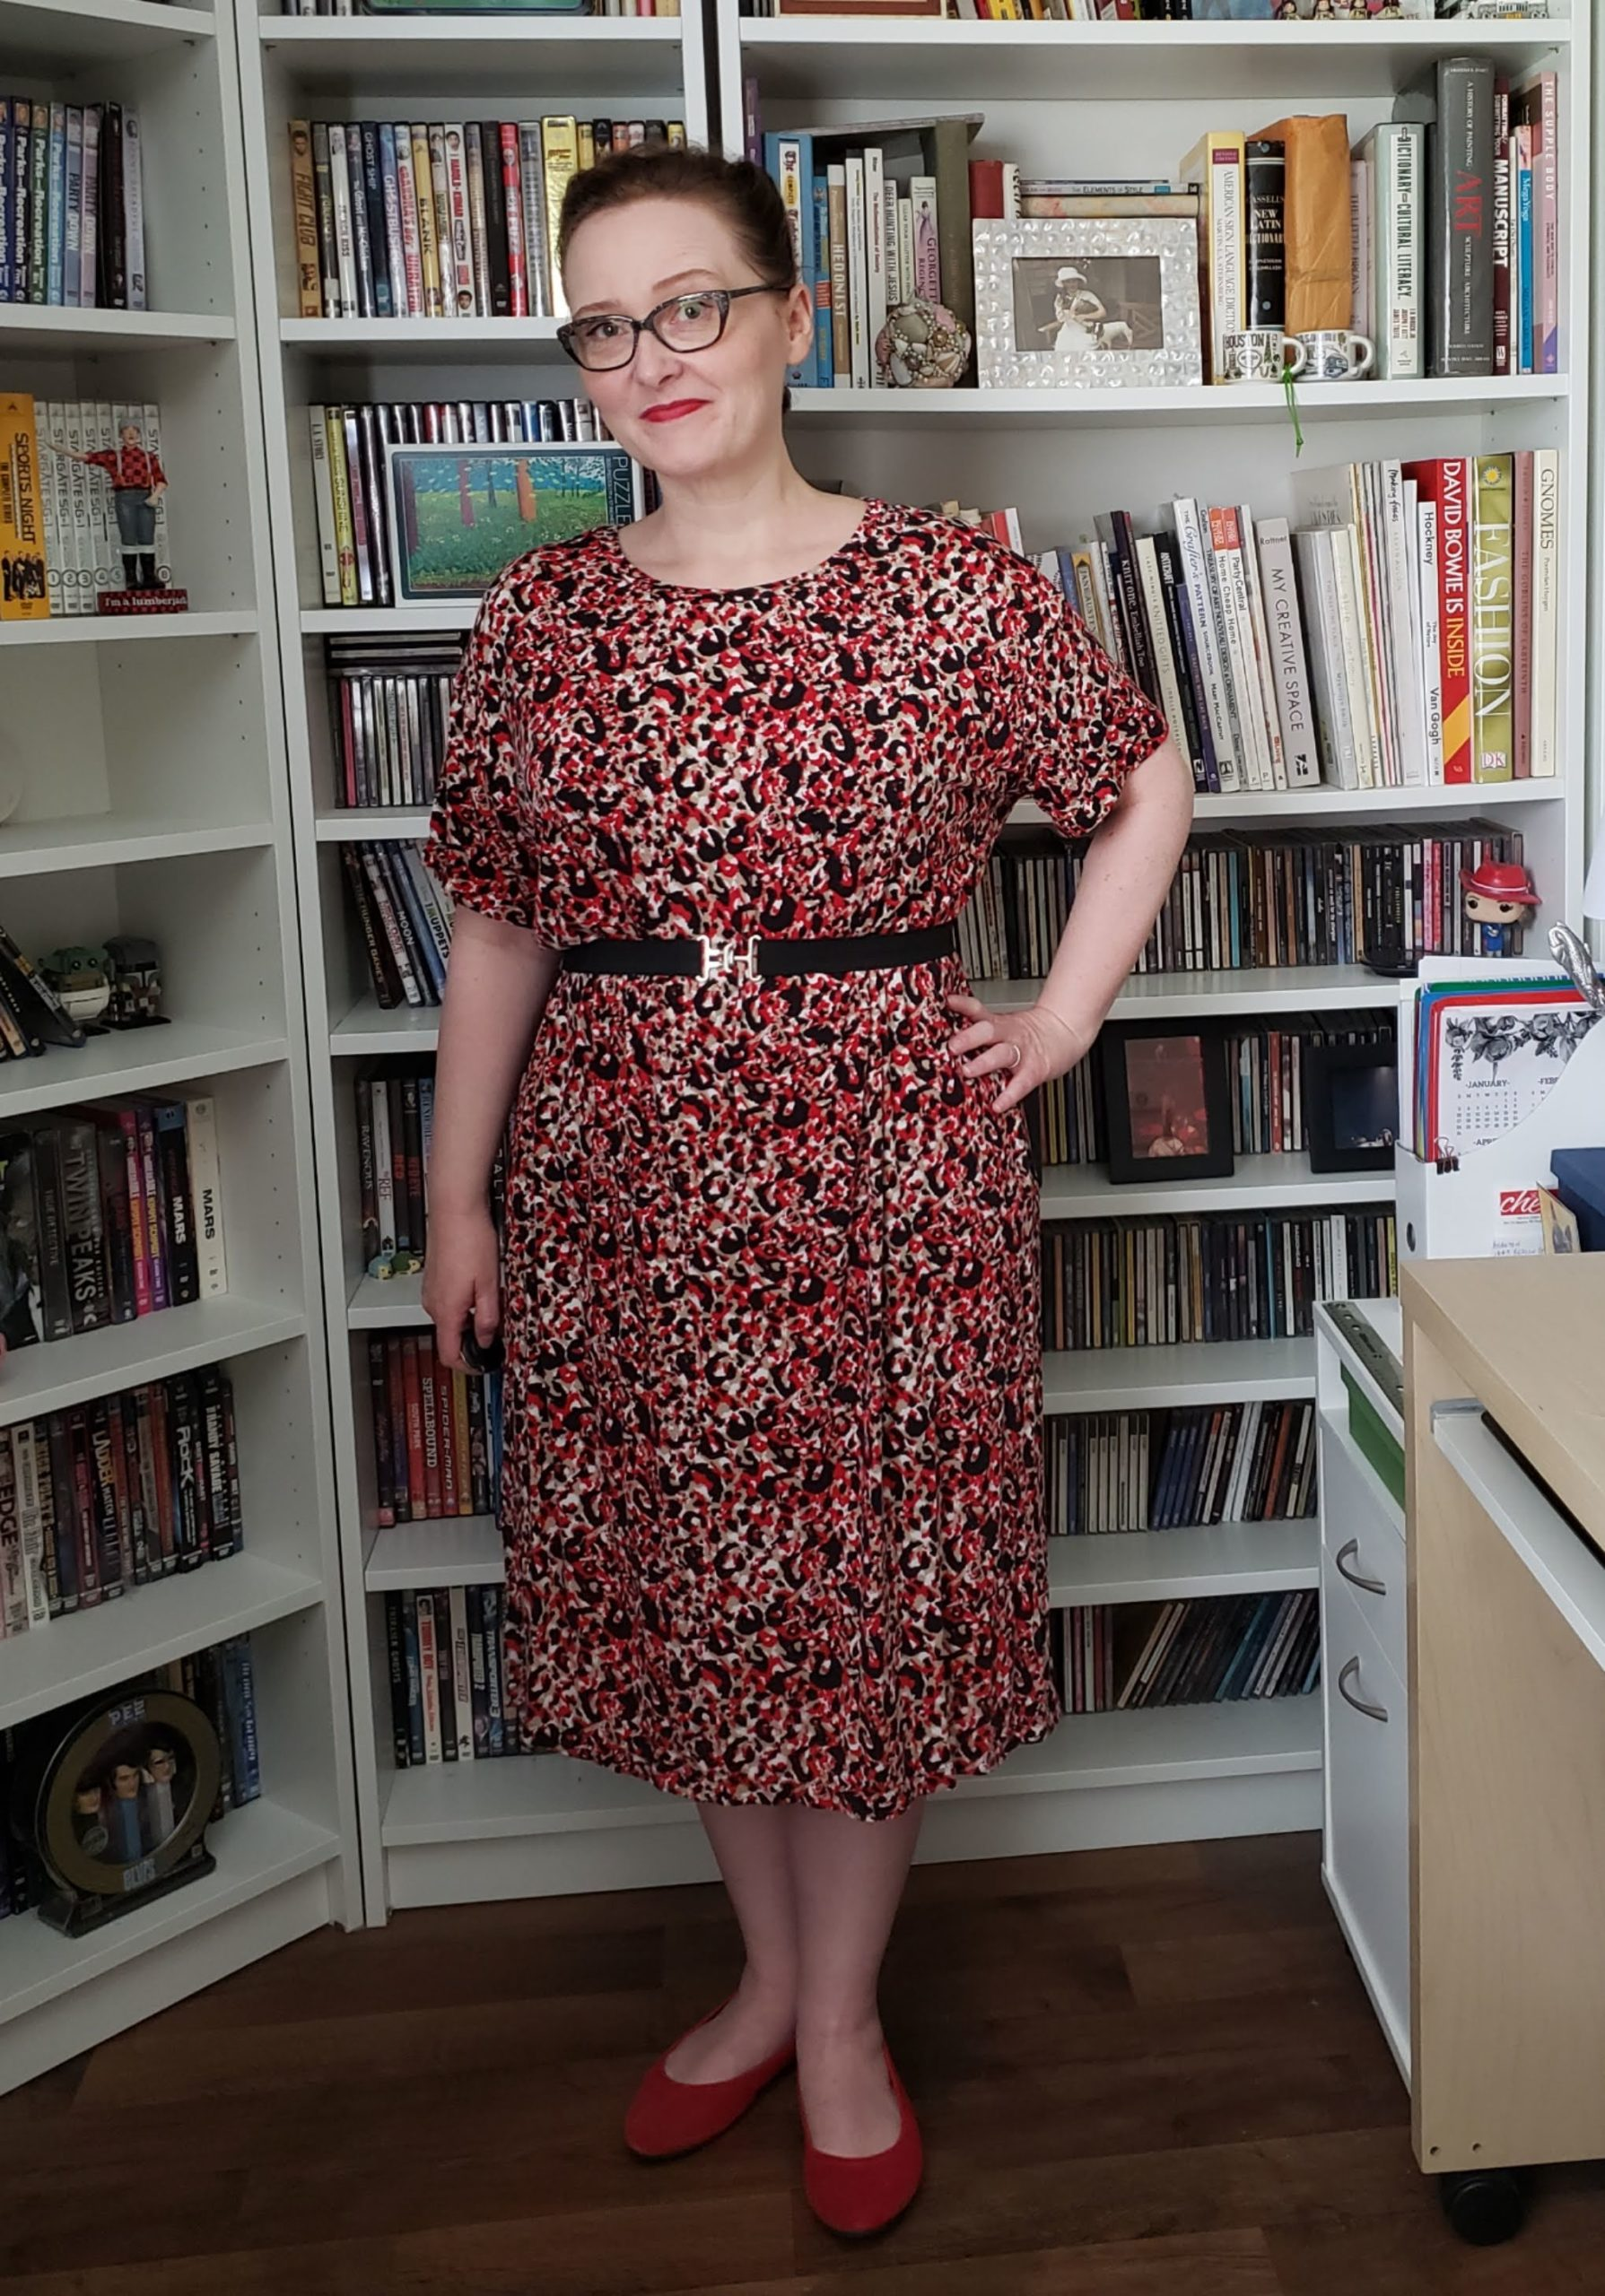 Sarah, a short, average-sized person, wears a black and red print 80s style t-shirt dress.